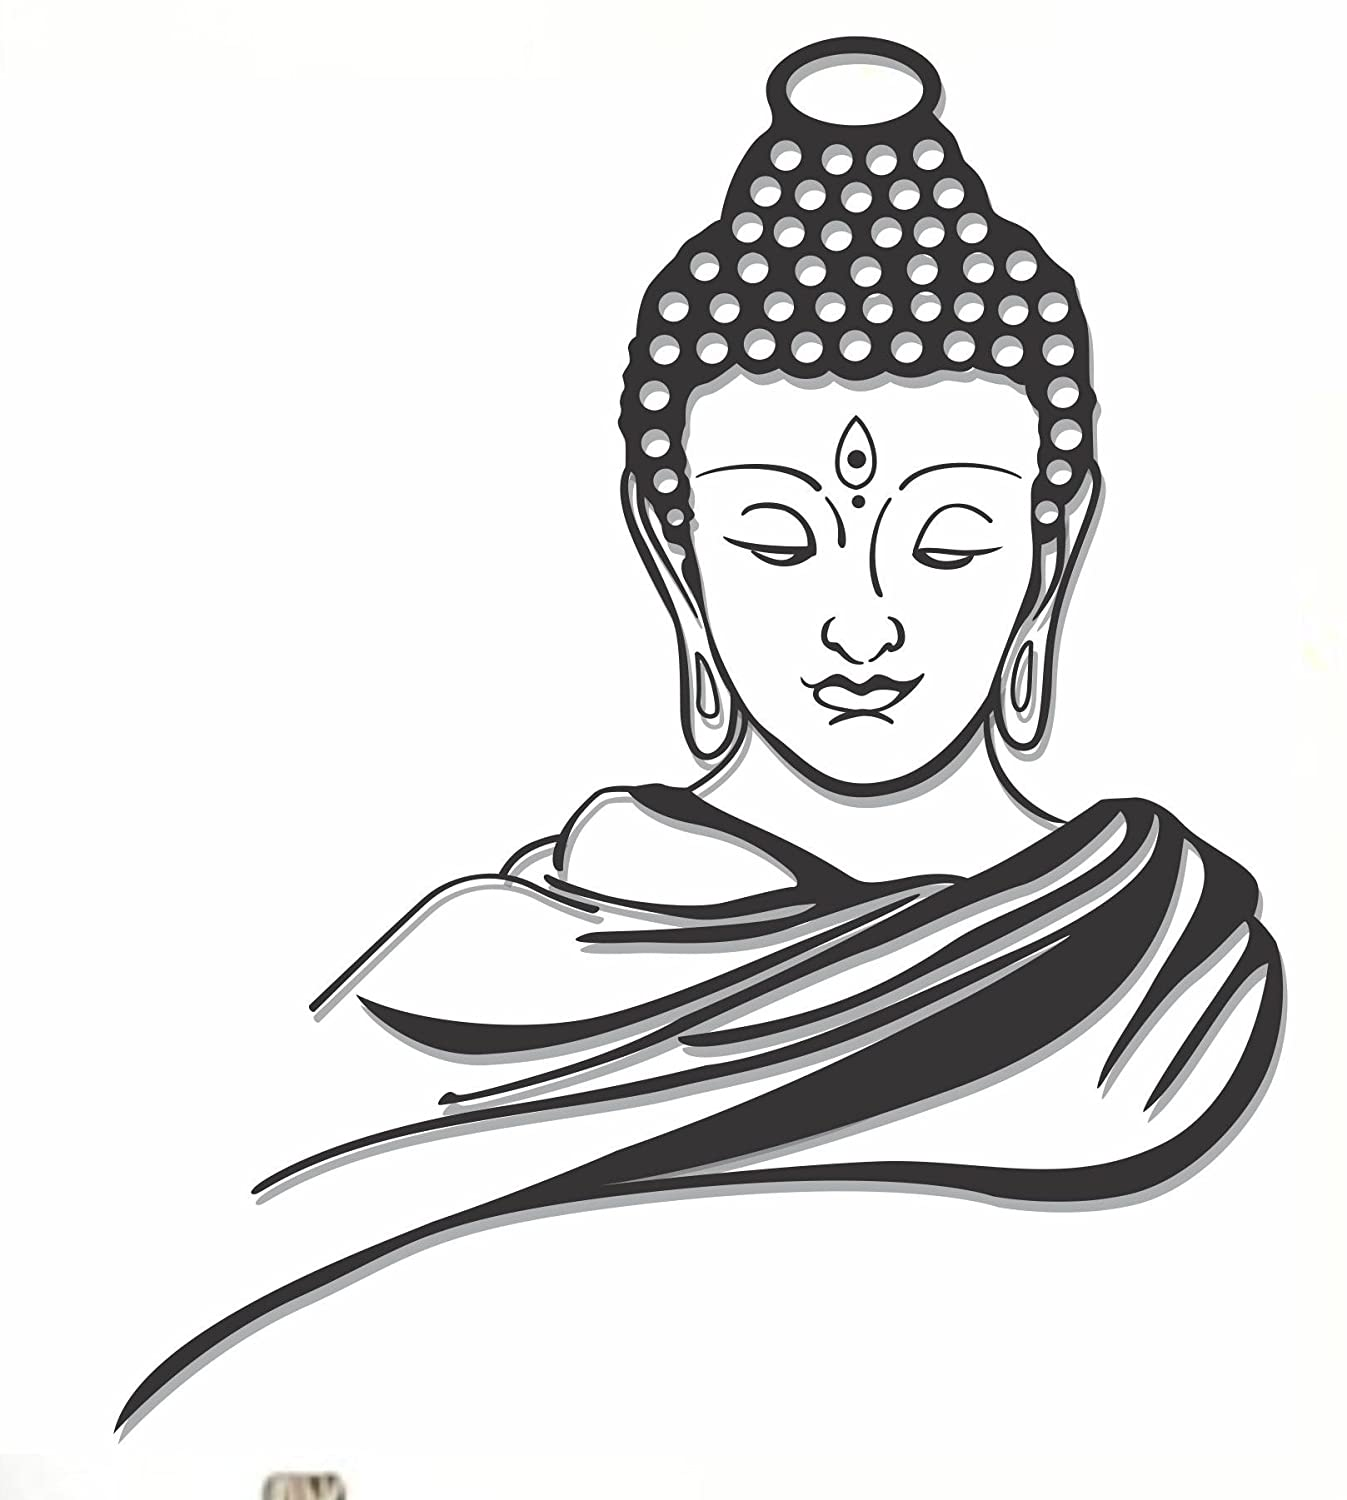 Happy walls lord buddha black wall decal and sticker vinyl wall stickers